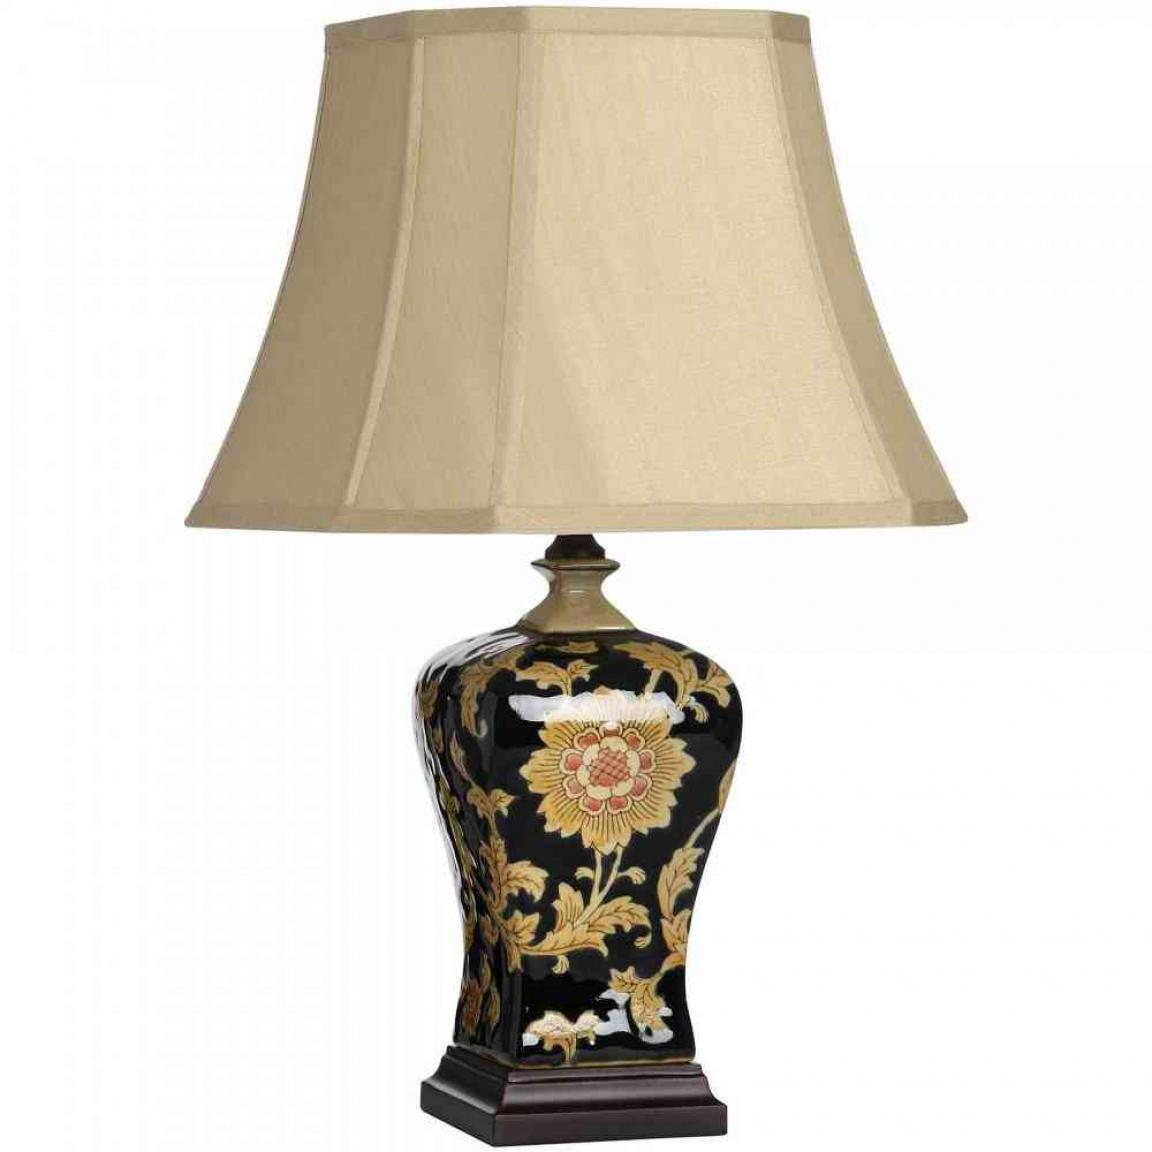 Classic bedroom table lamps with black ceramics material for Homebase design your own bedroom